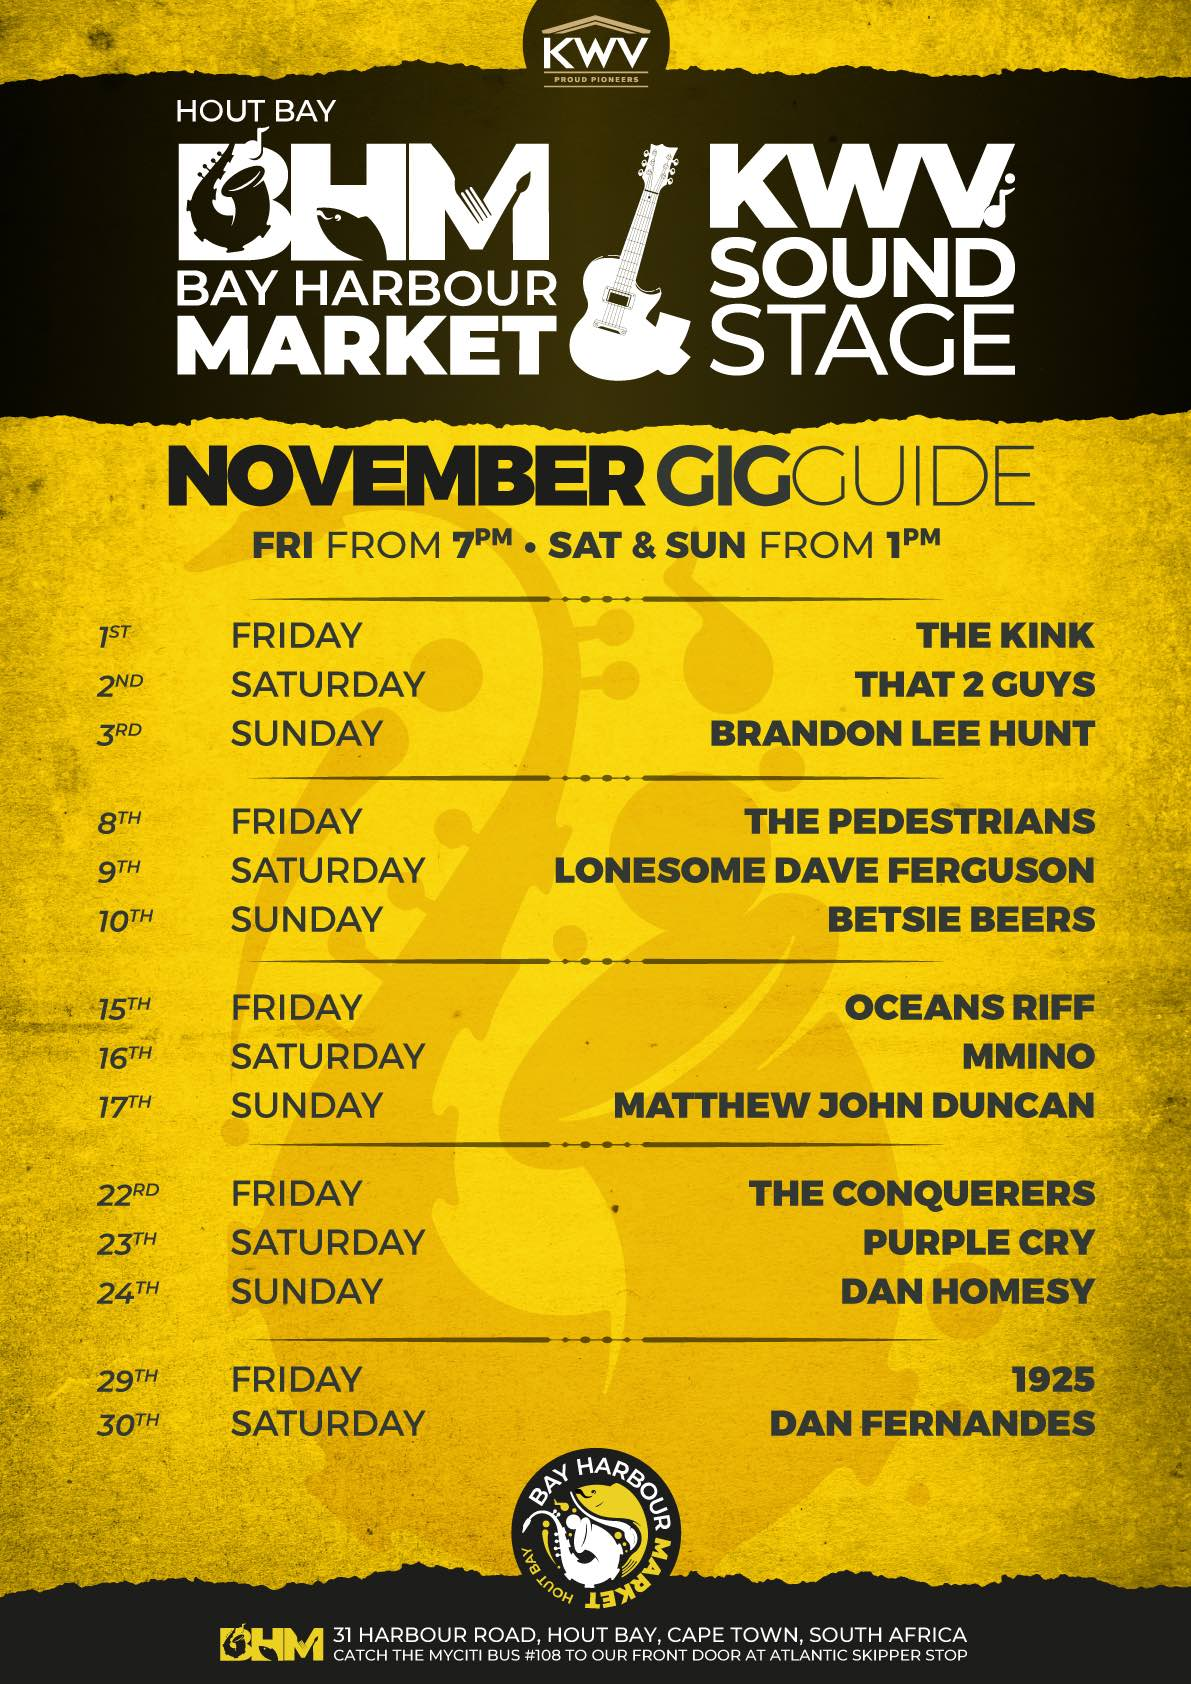 november gig guide at the bay harbour market in hout bay